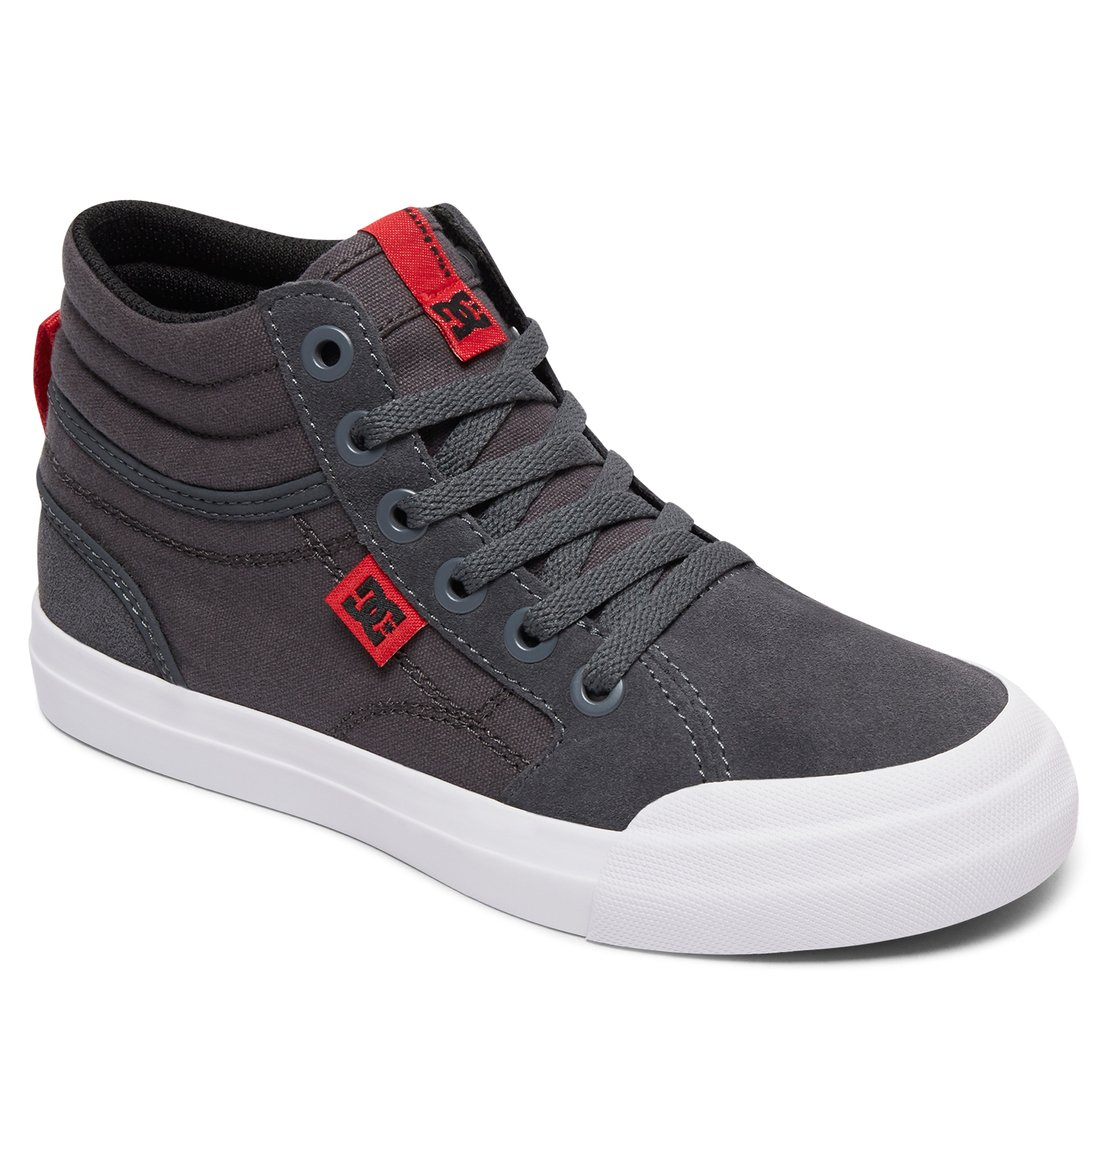 Dc High Top Shoes For Boys